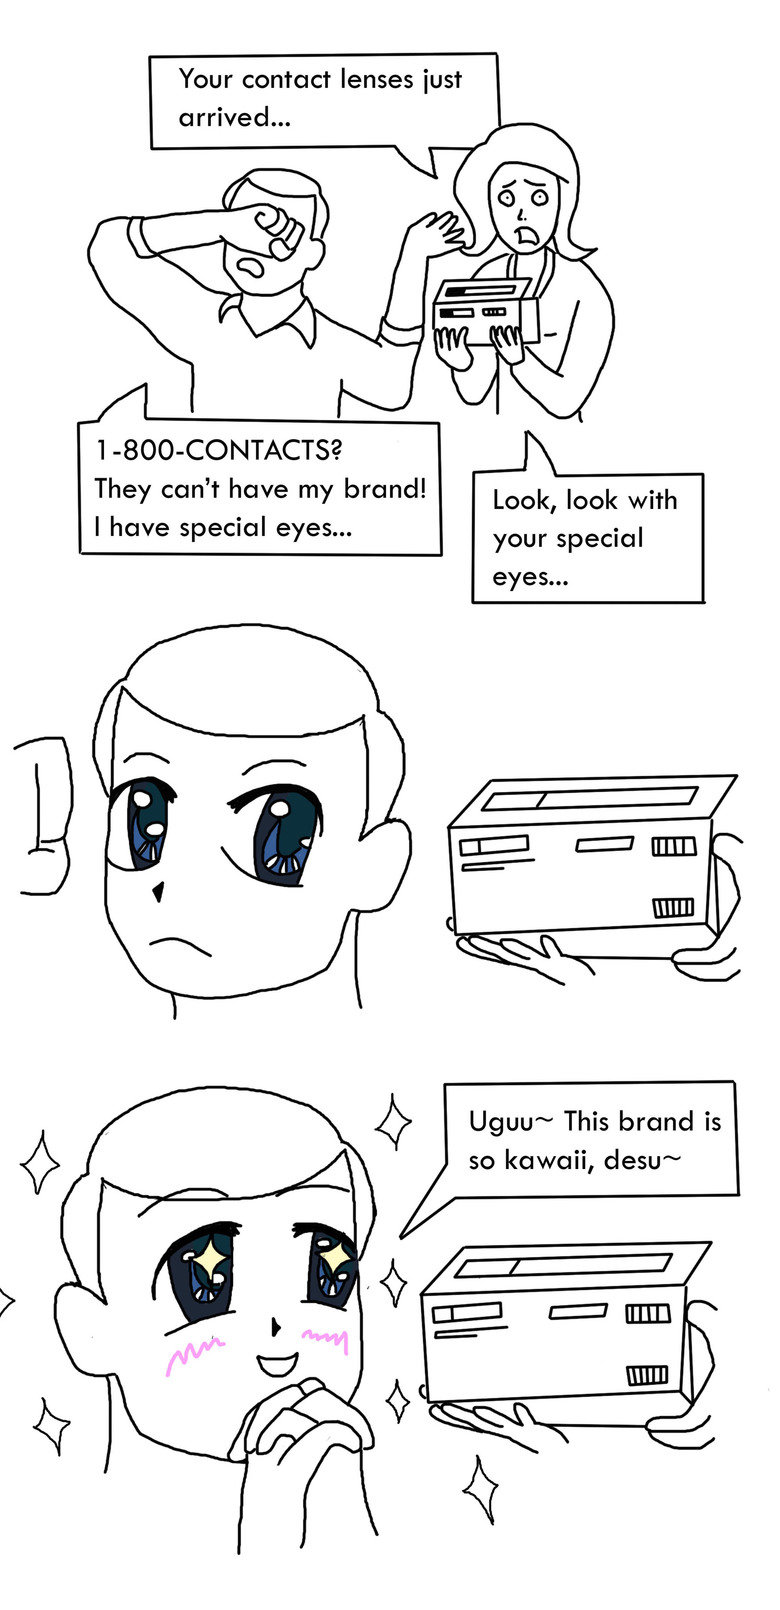 My Brand!. Imagine the size of those contacts.... Your contact lenses just They can' t have my brand! Look, look with I have special eyes... your special This b